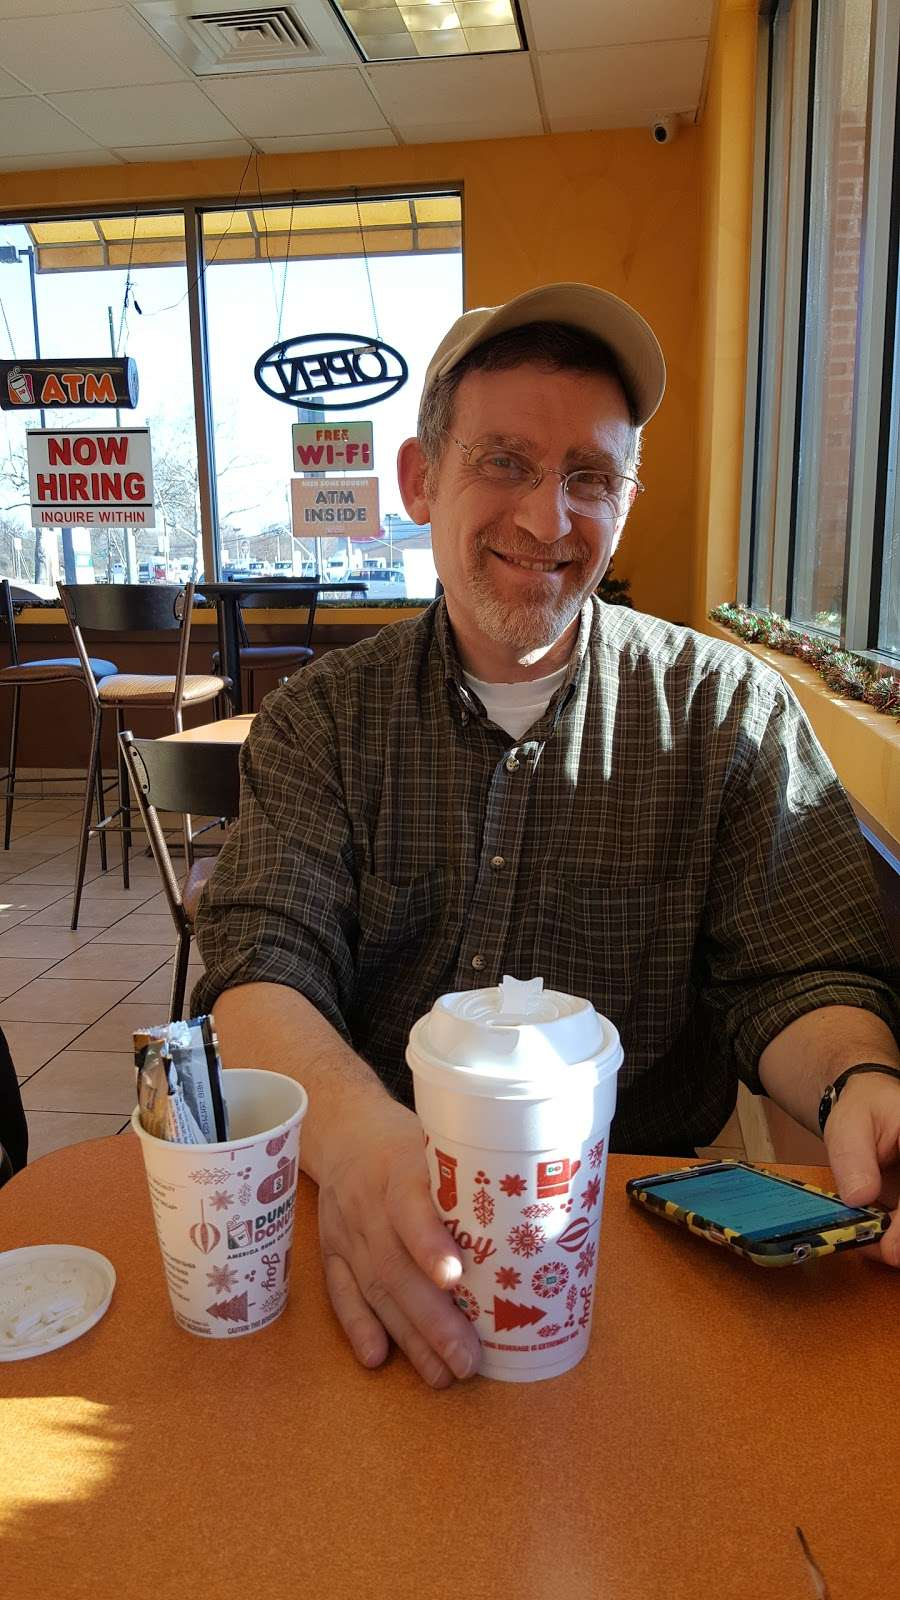 Dunkin Donuts - cafe    Photo 8 of 10   Address: 421 N Broadway, Pennsville, NJ 08070, USA   Phone: (856) 299-2035